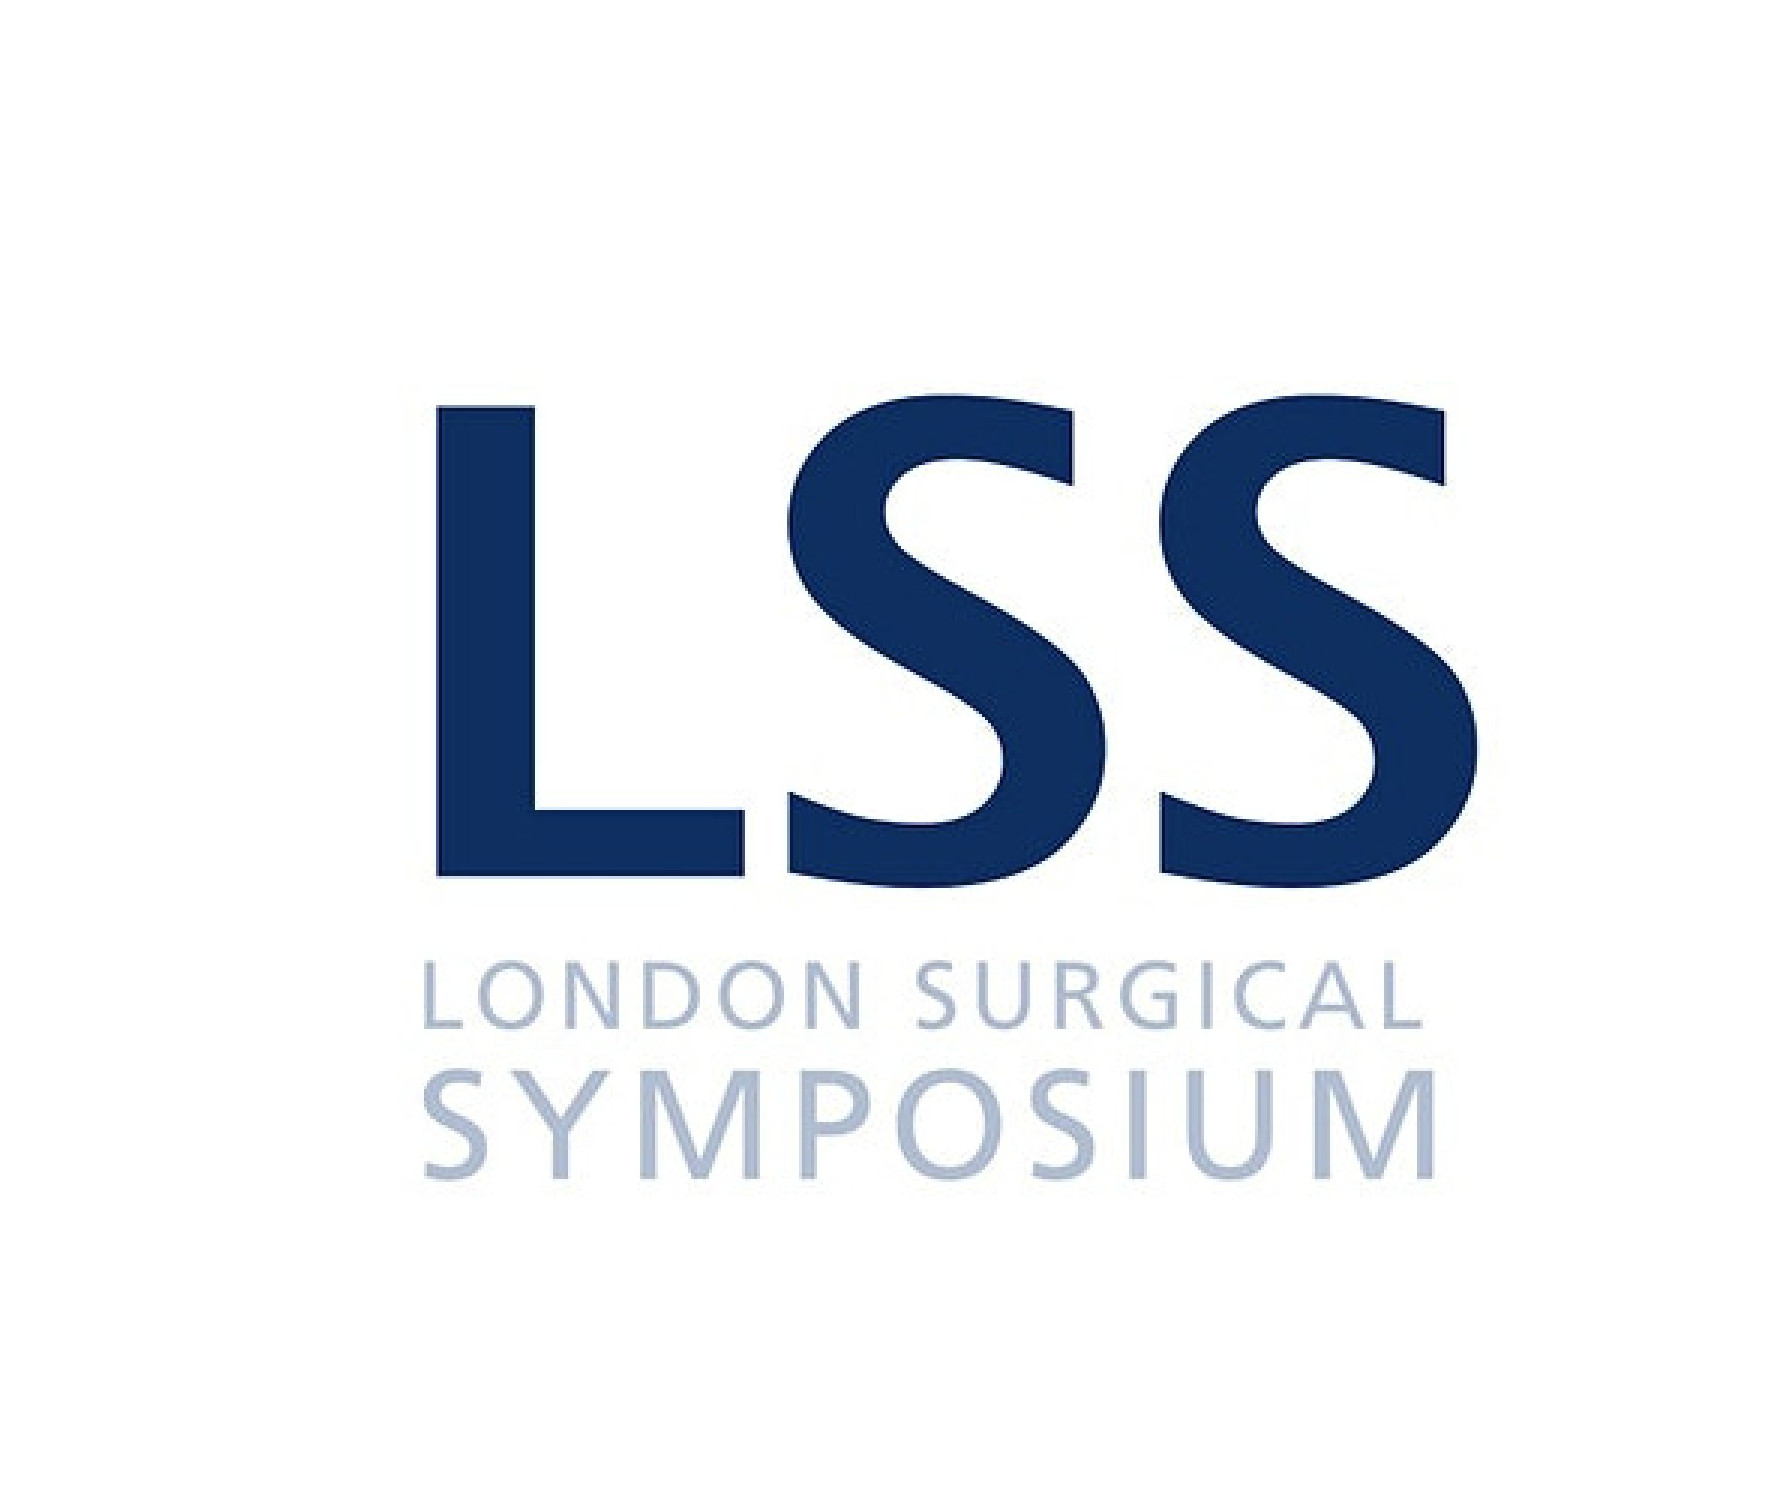 London Surgical Symposium 2020